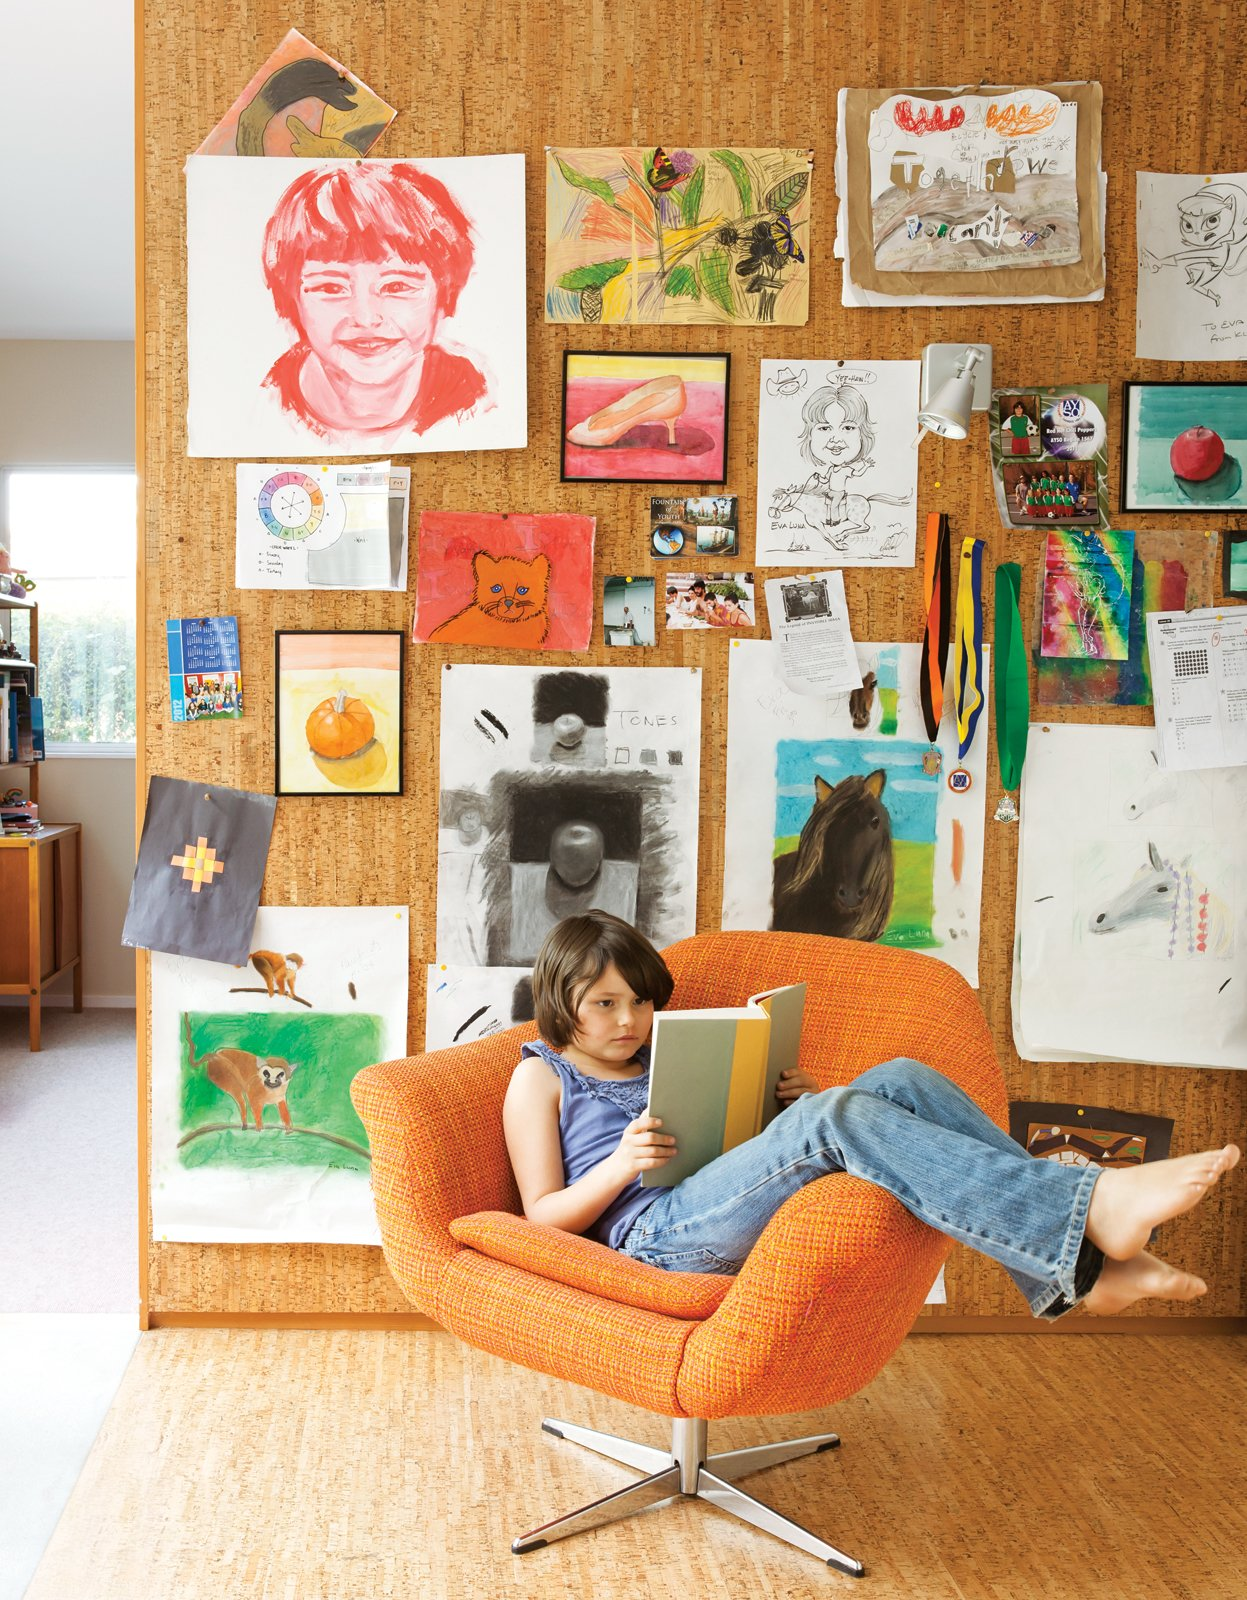 10 Tips For Hanging Art In Your Homeand Our Picks For Creating